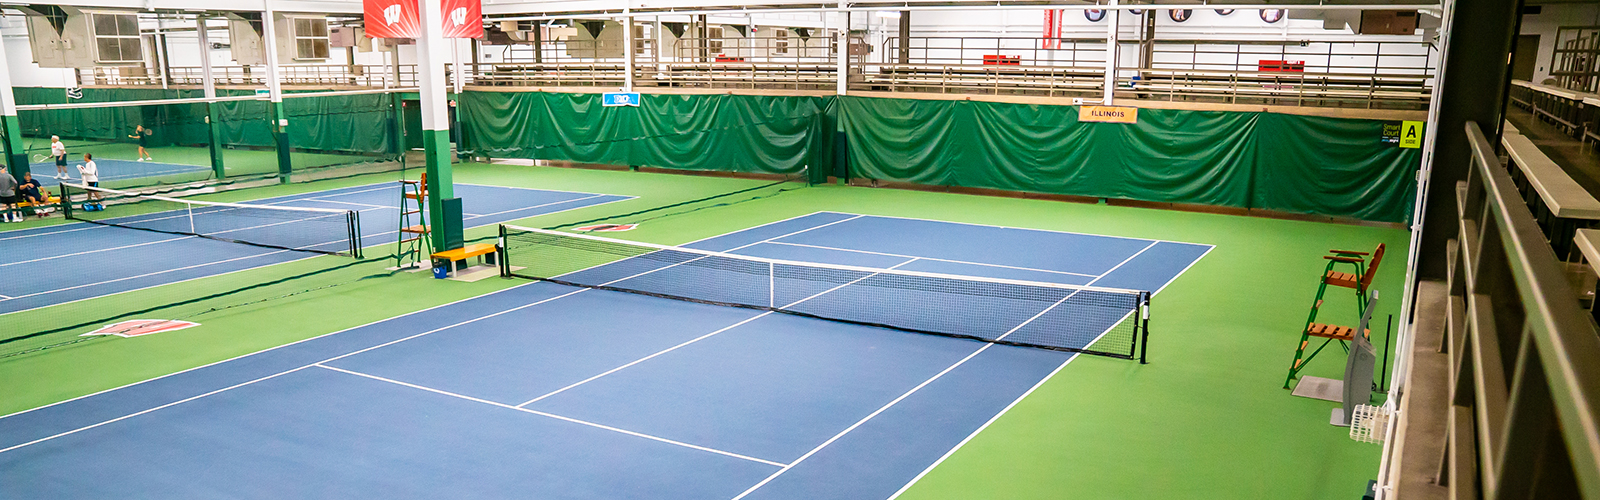 A photo of a blue and green tennis court at Nielsen Tennis Stadium